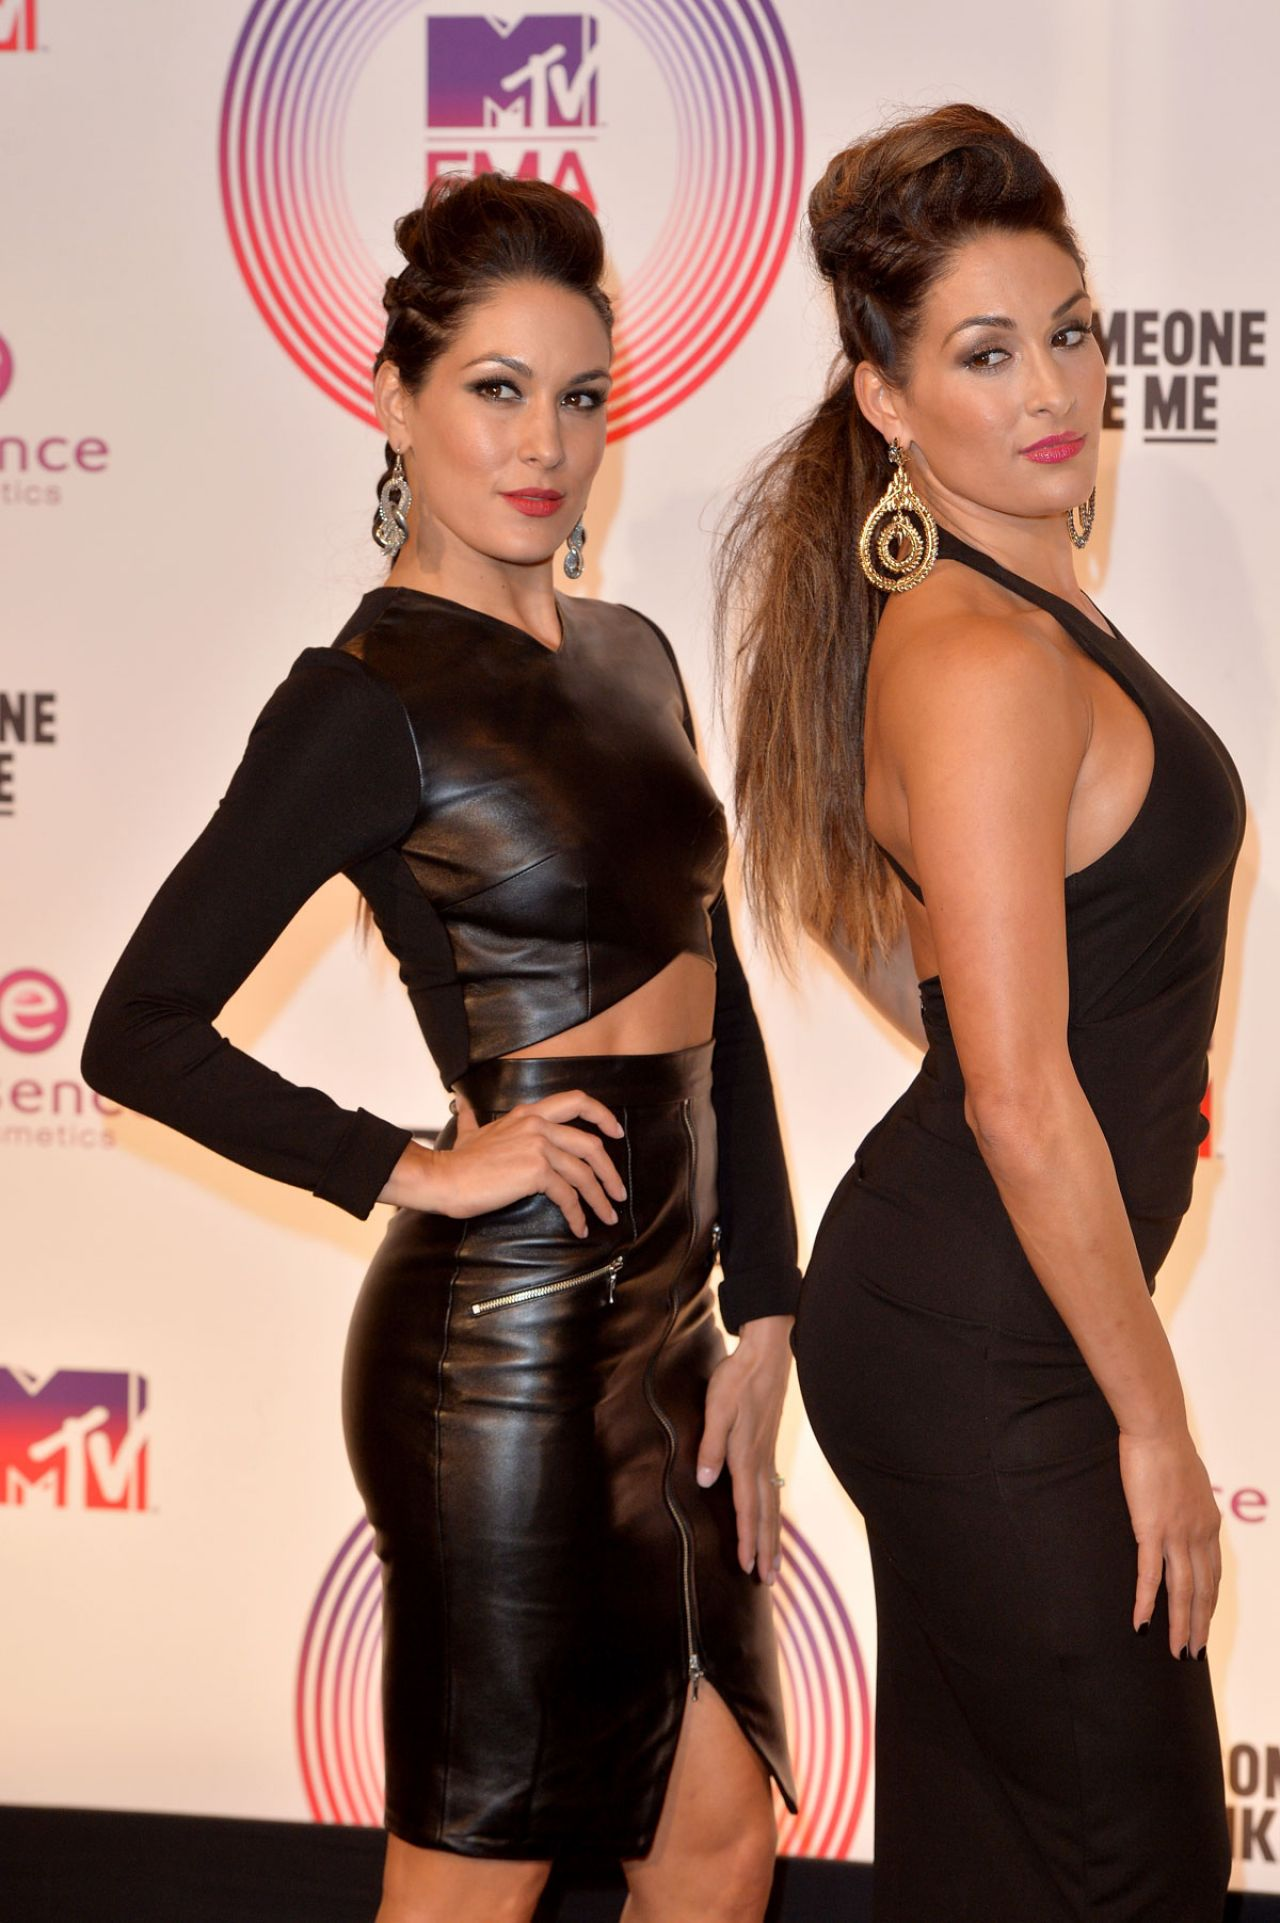 Nicole Garcia & Brianna Garcia (Bella Twins) at the MTV EMA